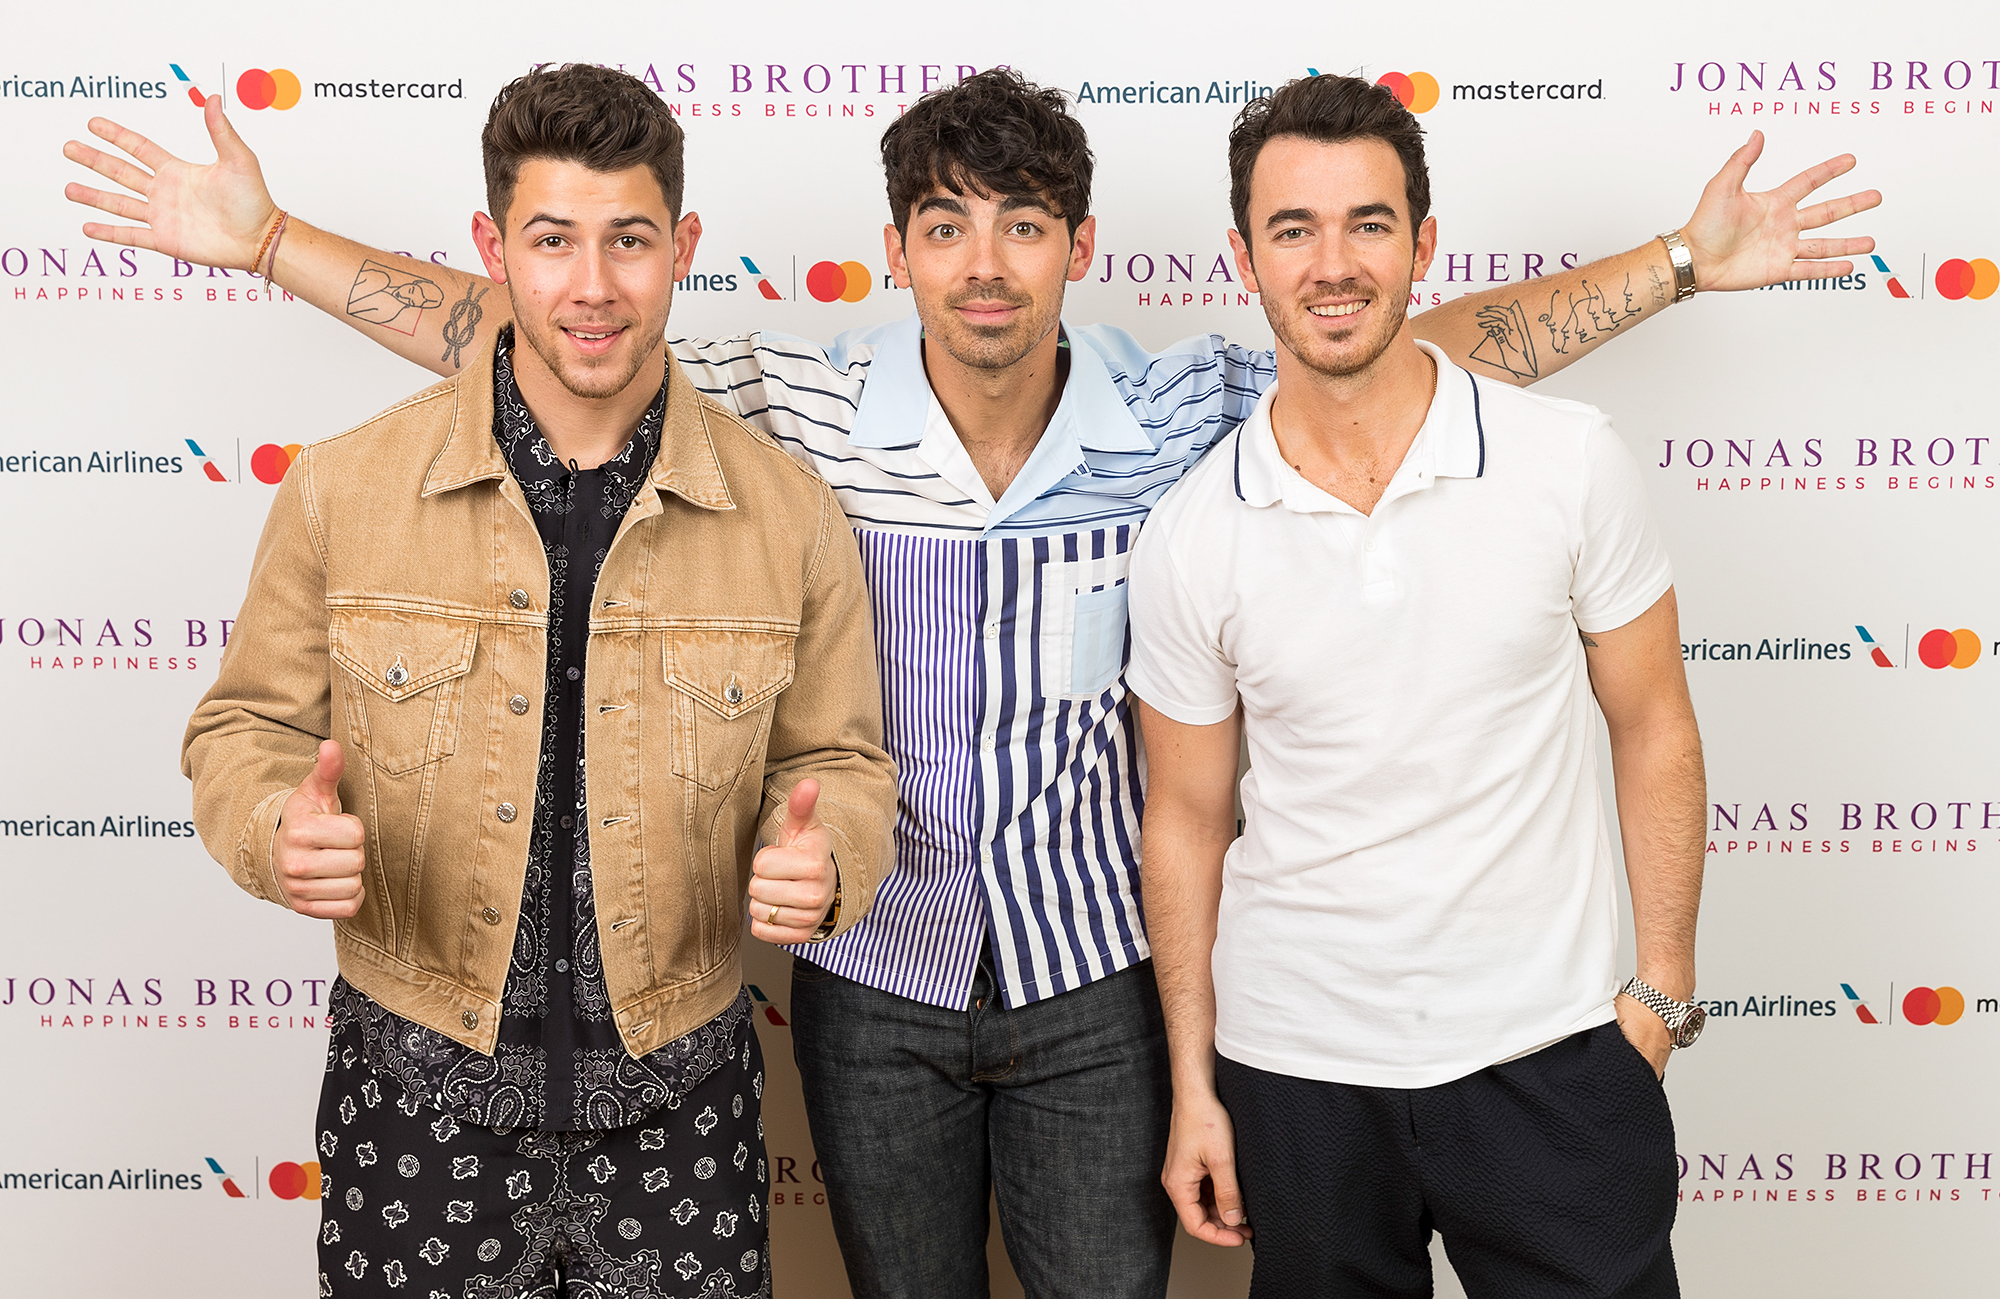 The Jonas Brothers Announce the Happiness Begins Tour presented by American Airlines and Mastercard, Las Vegas, USA - 30 Apr 2019